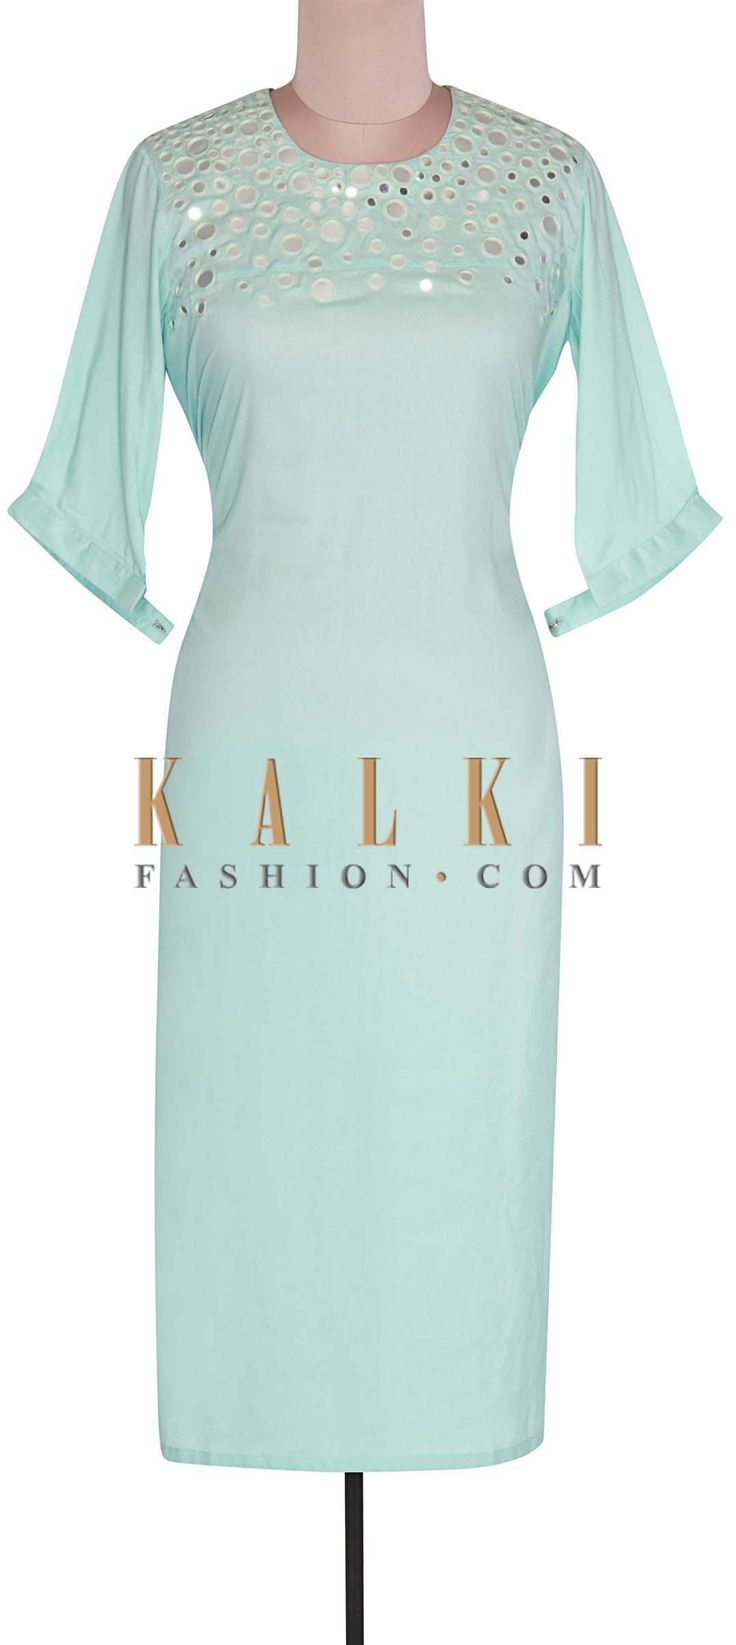 Buy Online from the link below. We ship worldwide (Free Shipping over US$100). Product SKU - 302291. Product Link - http://www.kalkifashion.com/blue-kurti-features-with-mirror-embroidery-only-on-kalki.html